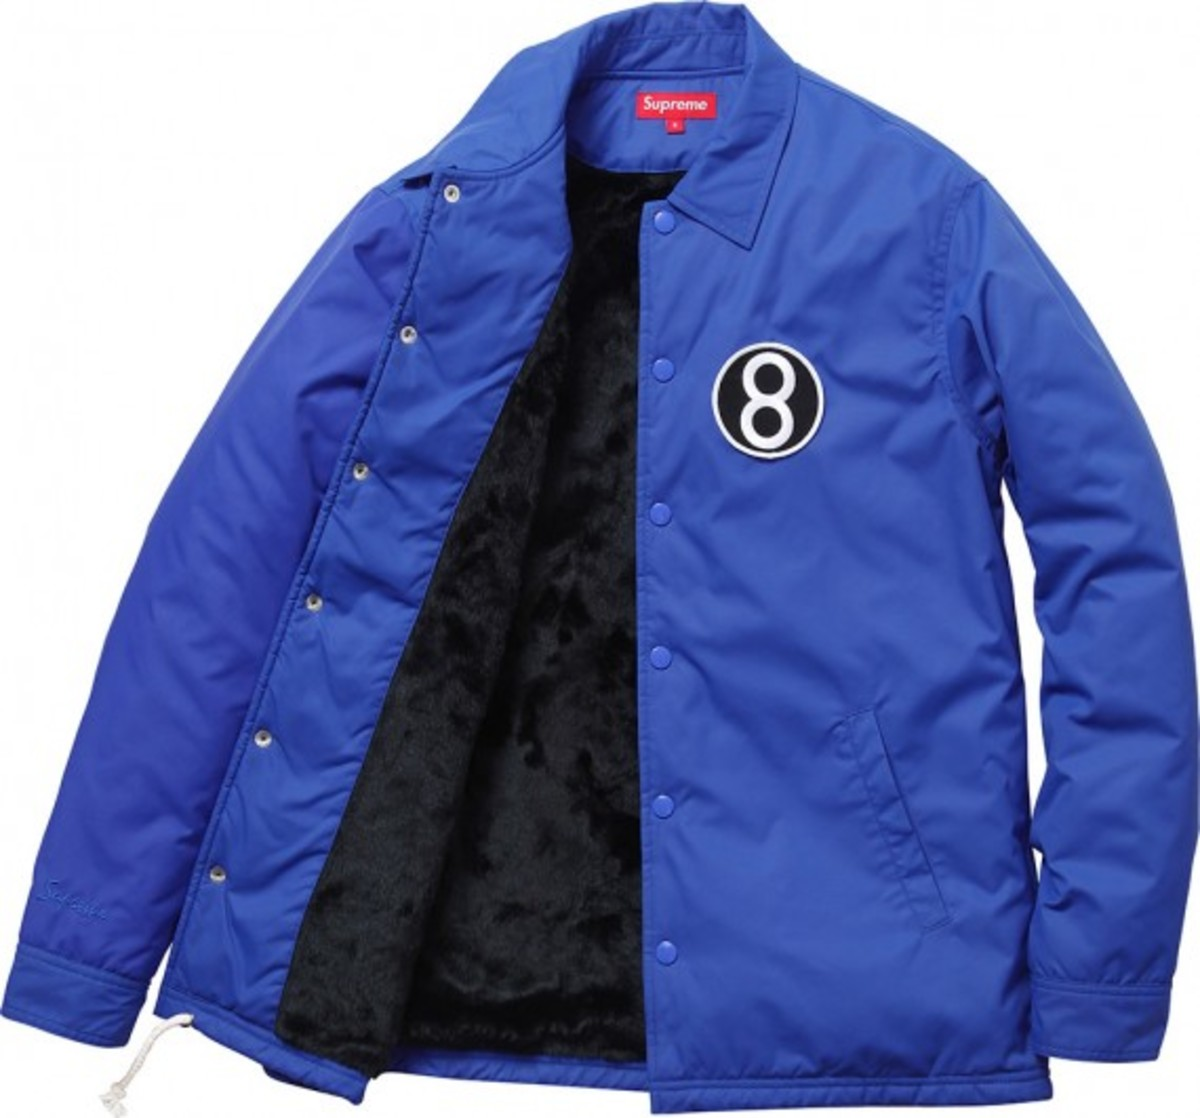 6-8_ball_coaches_jacket-zoom_1345455038